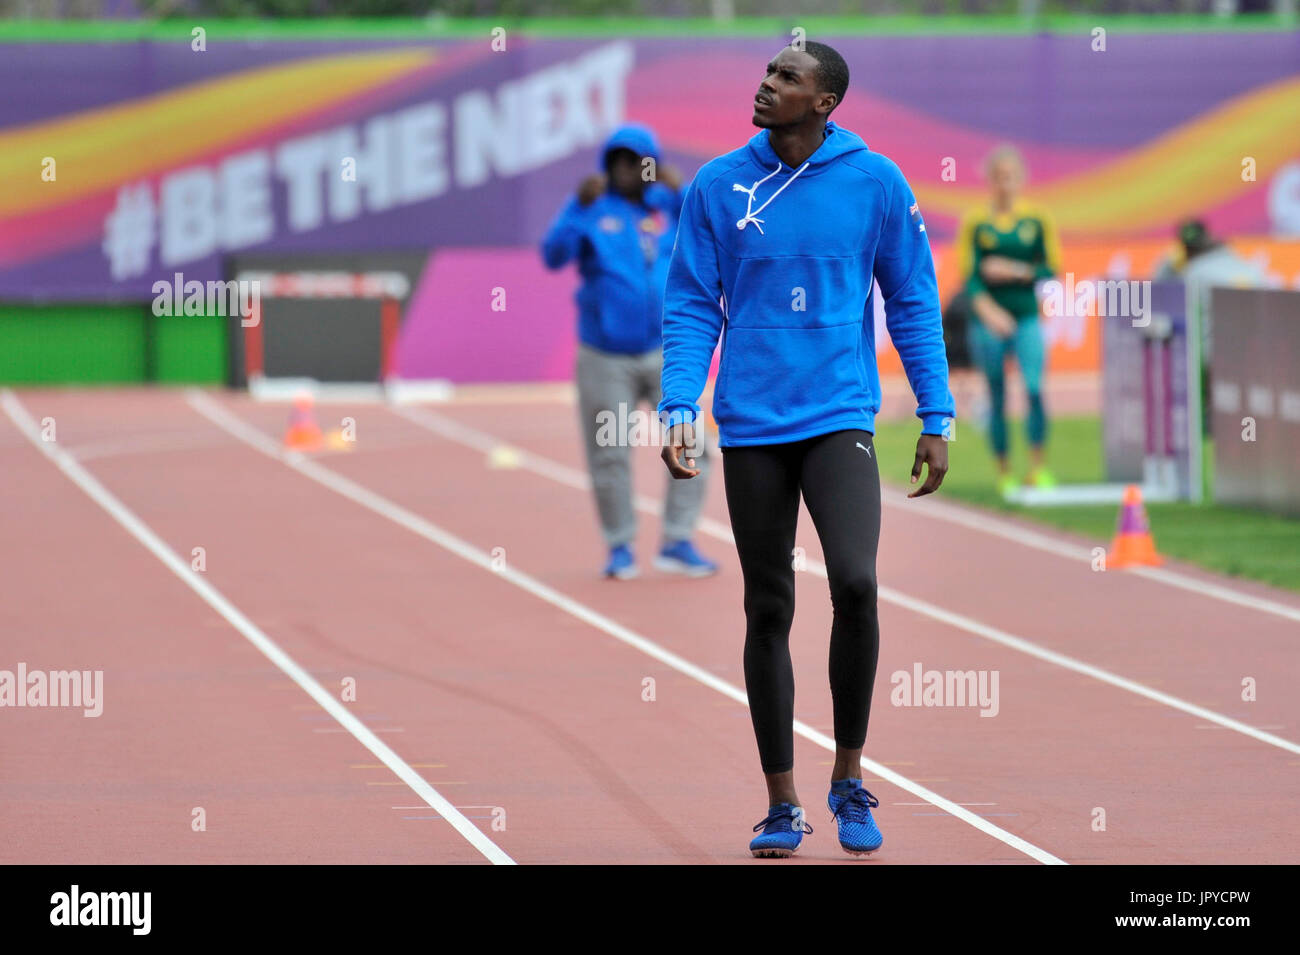 An Athlete Trains At The Warm Up Track Adjacent To London Stadium Ahead Of IAAF World Championships 2017 Which Begin Formally On 4 August